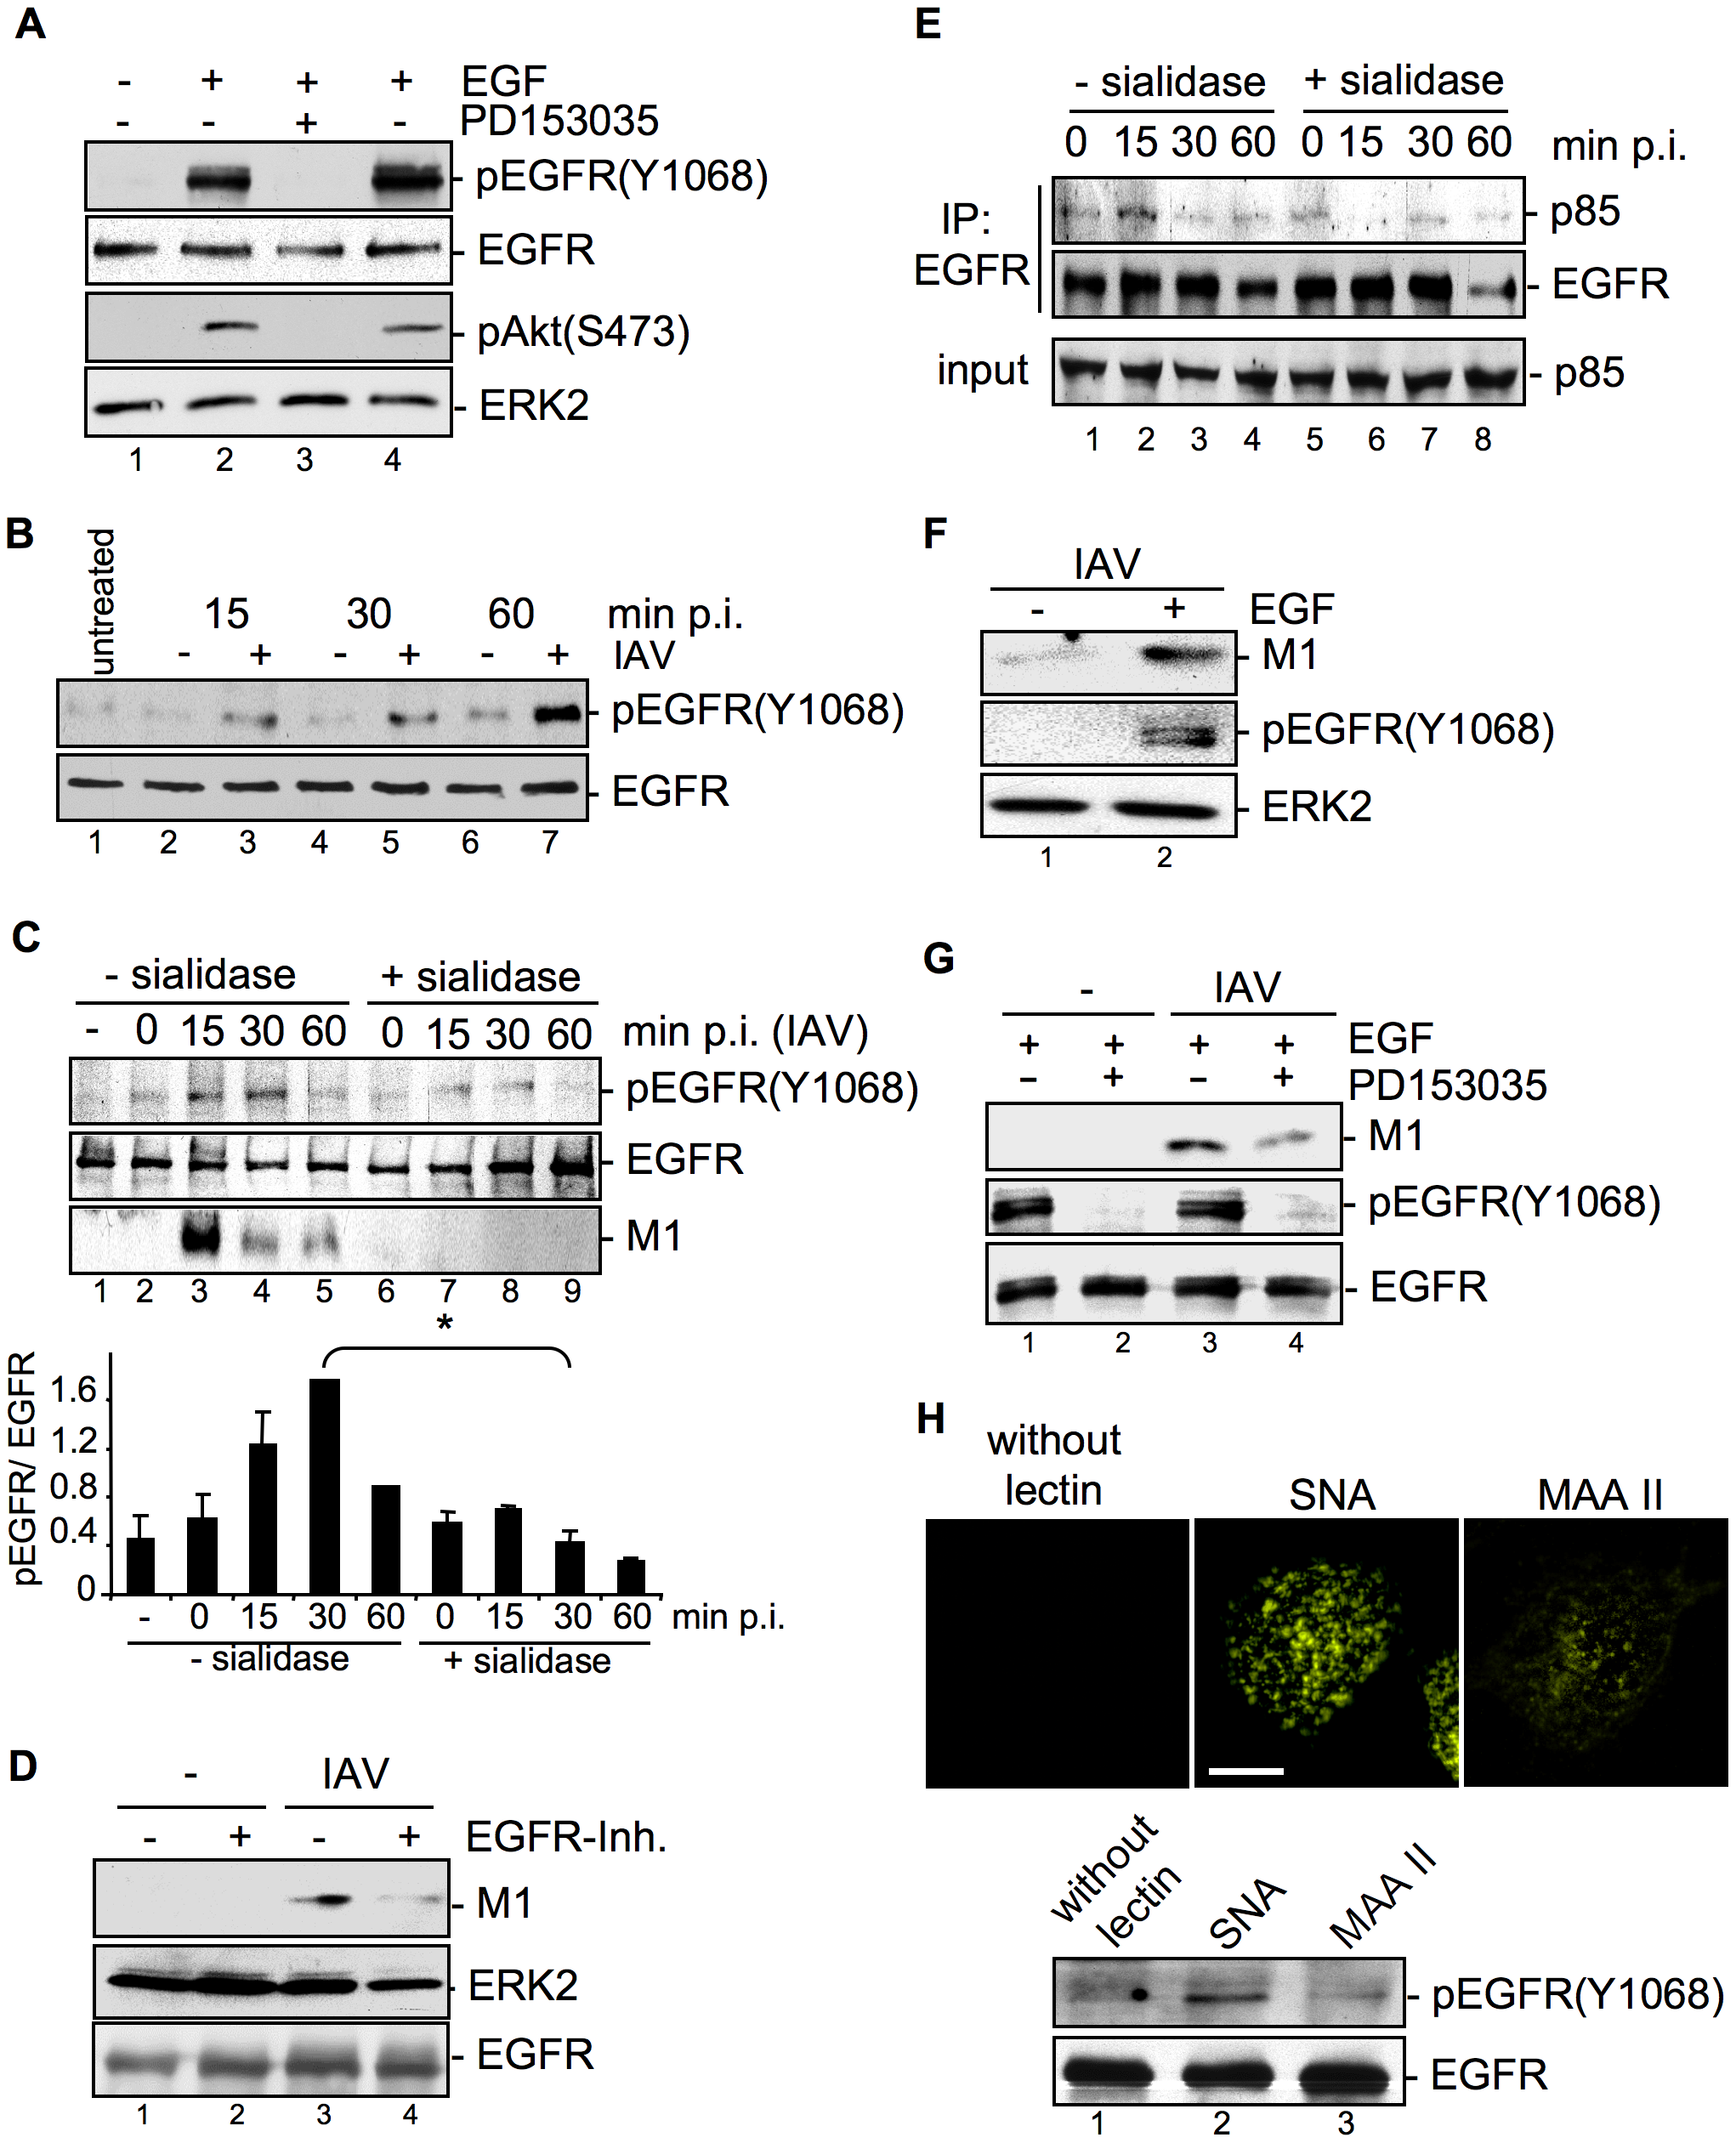 EGFR kinase activity is induced upon viral attachment and is required for efficient IAV internalization.